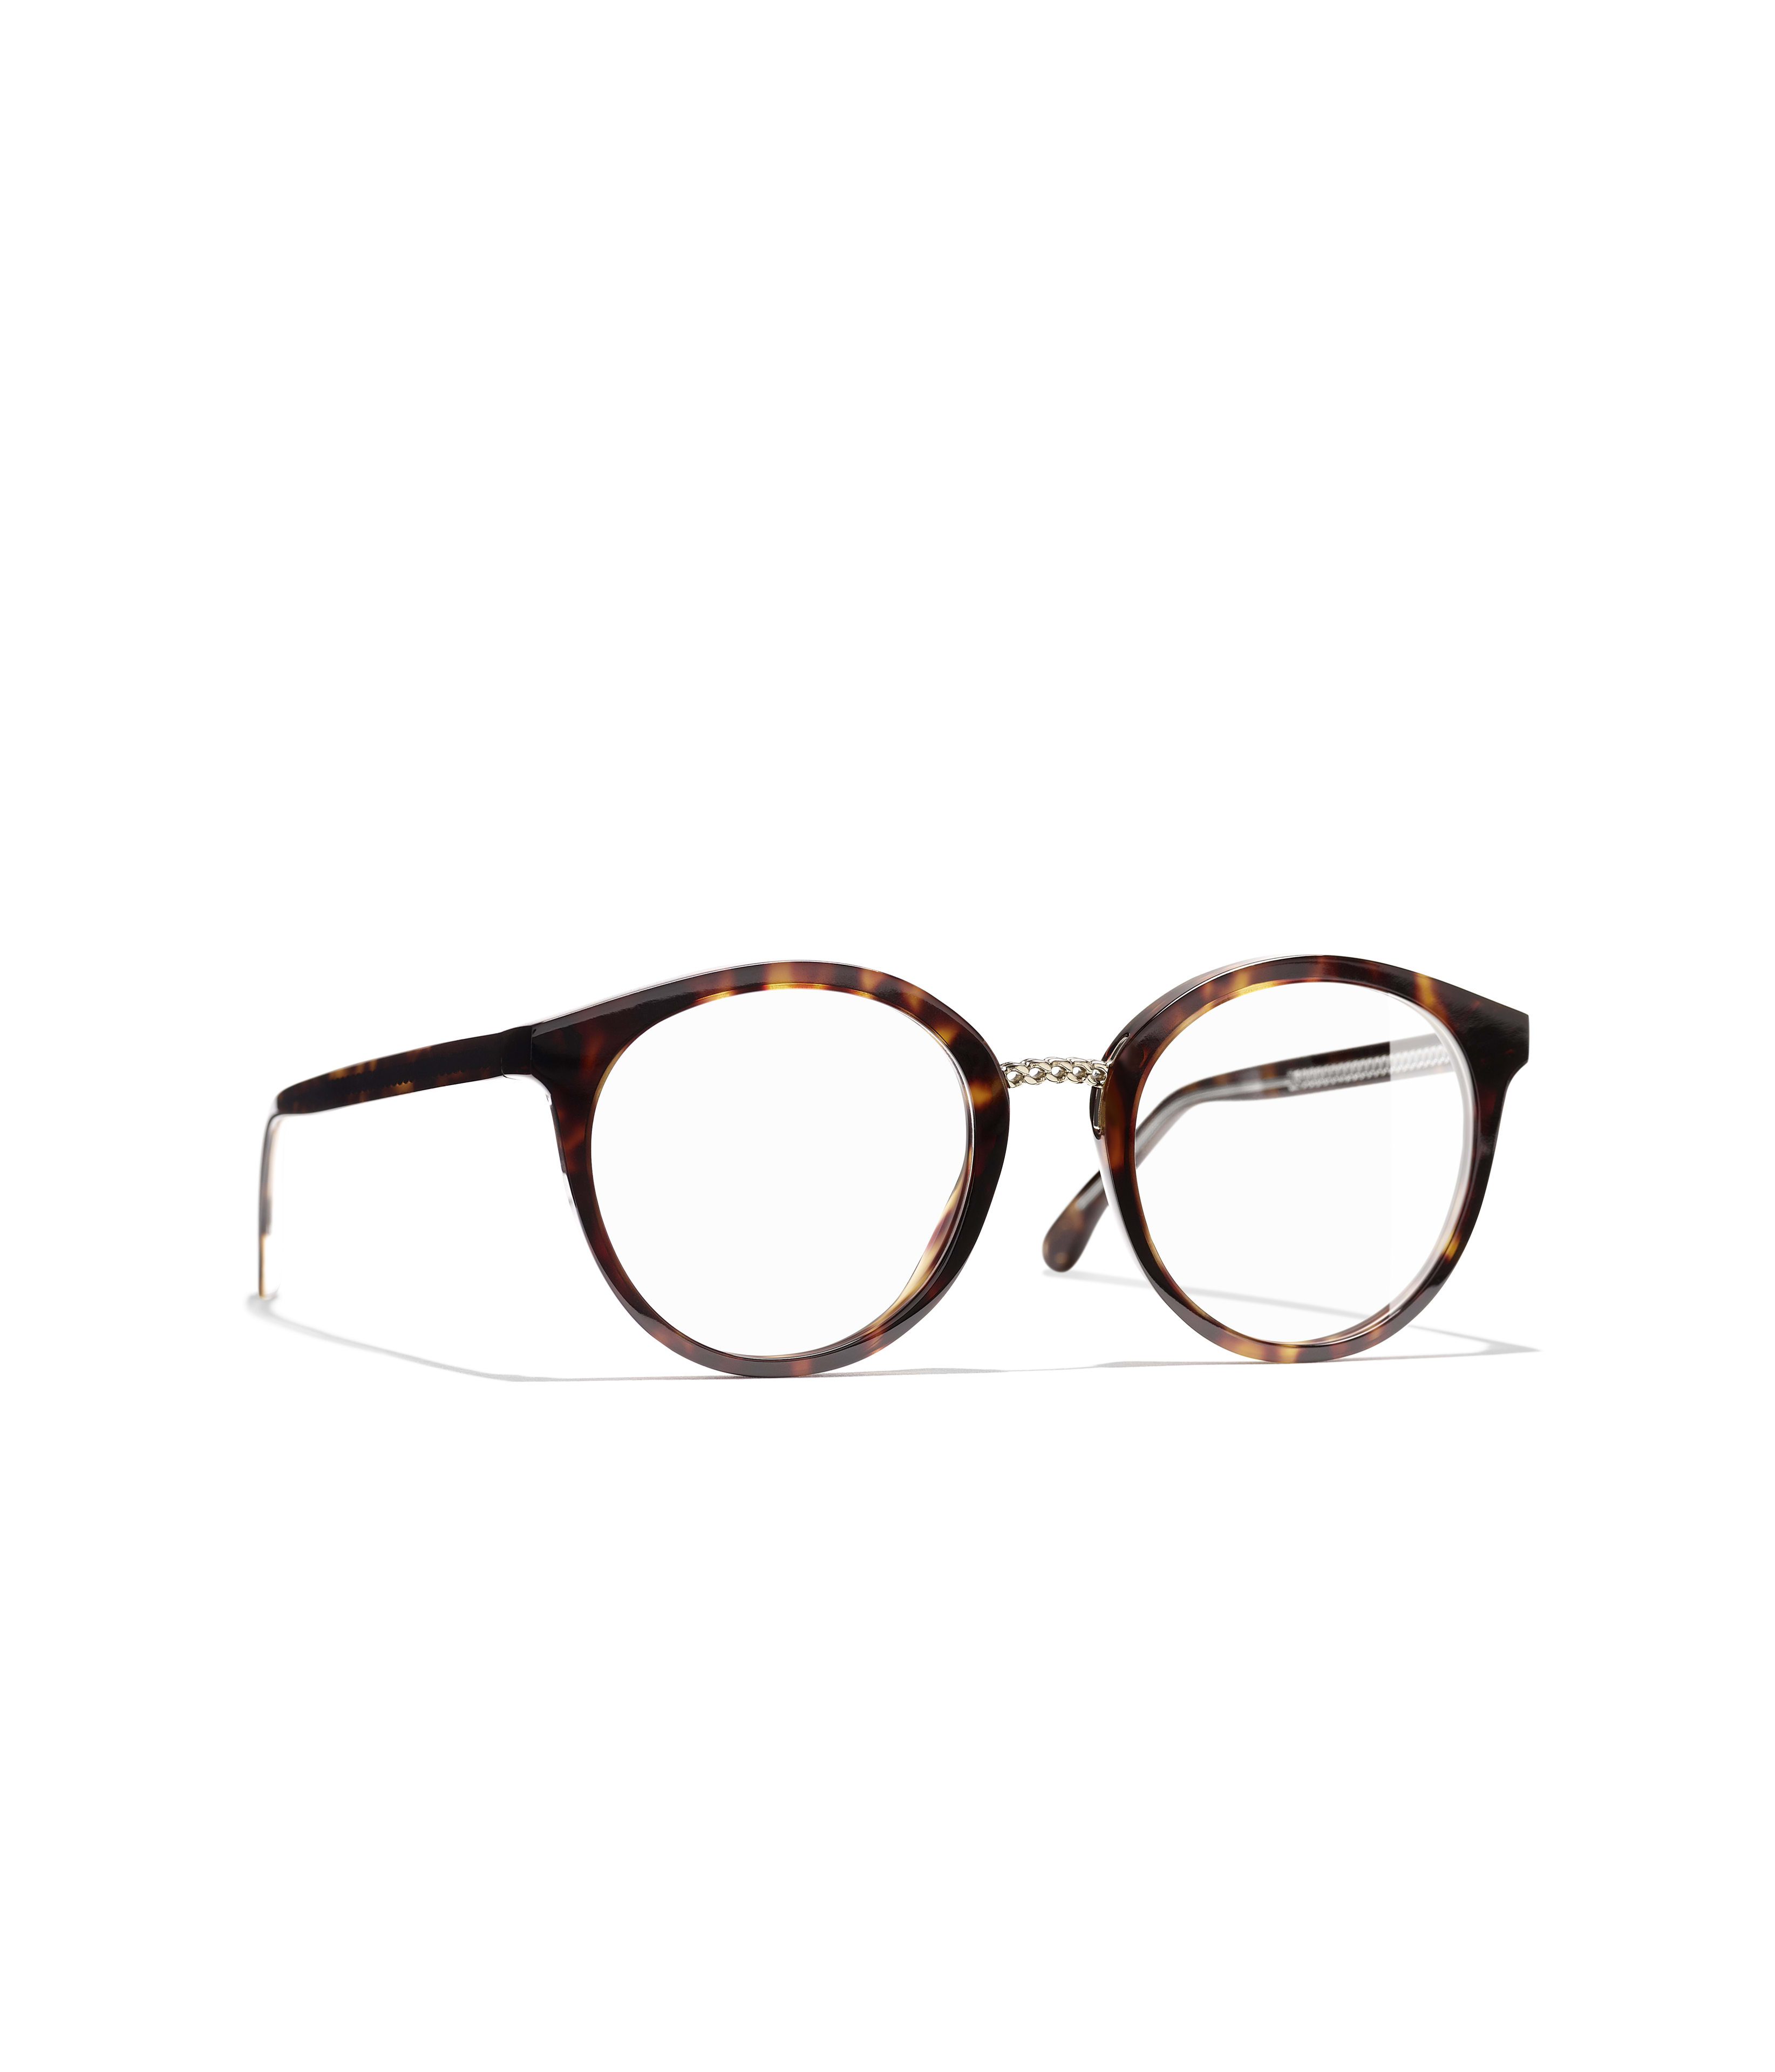 aeaa1b1cafd694 Lunettes optiques - CHANEL